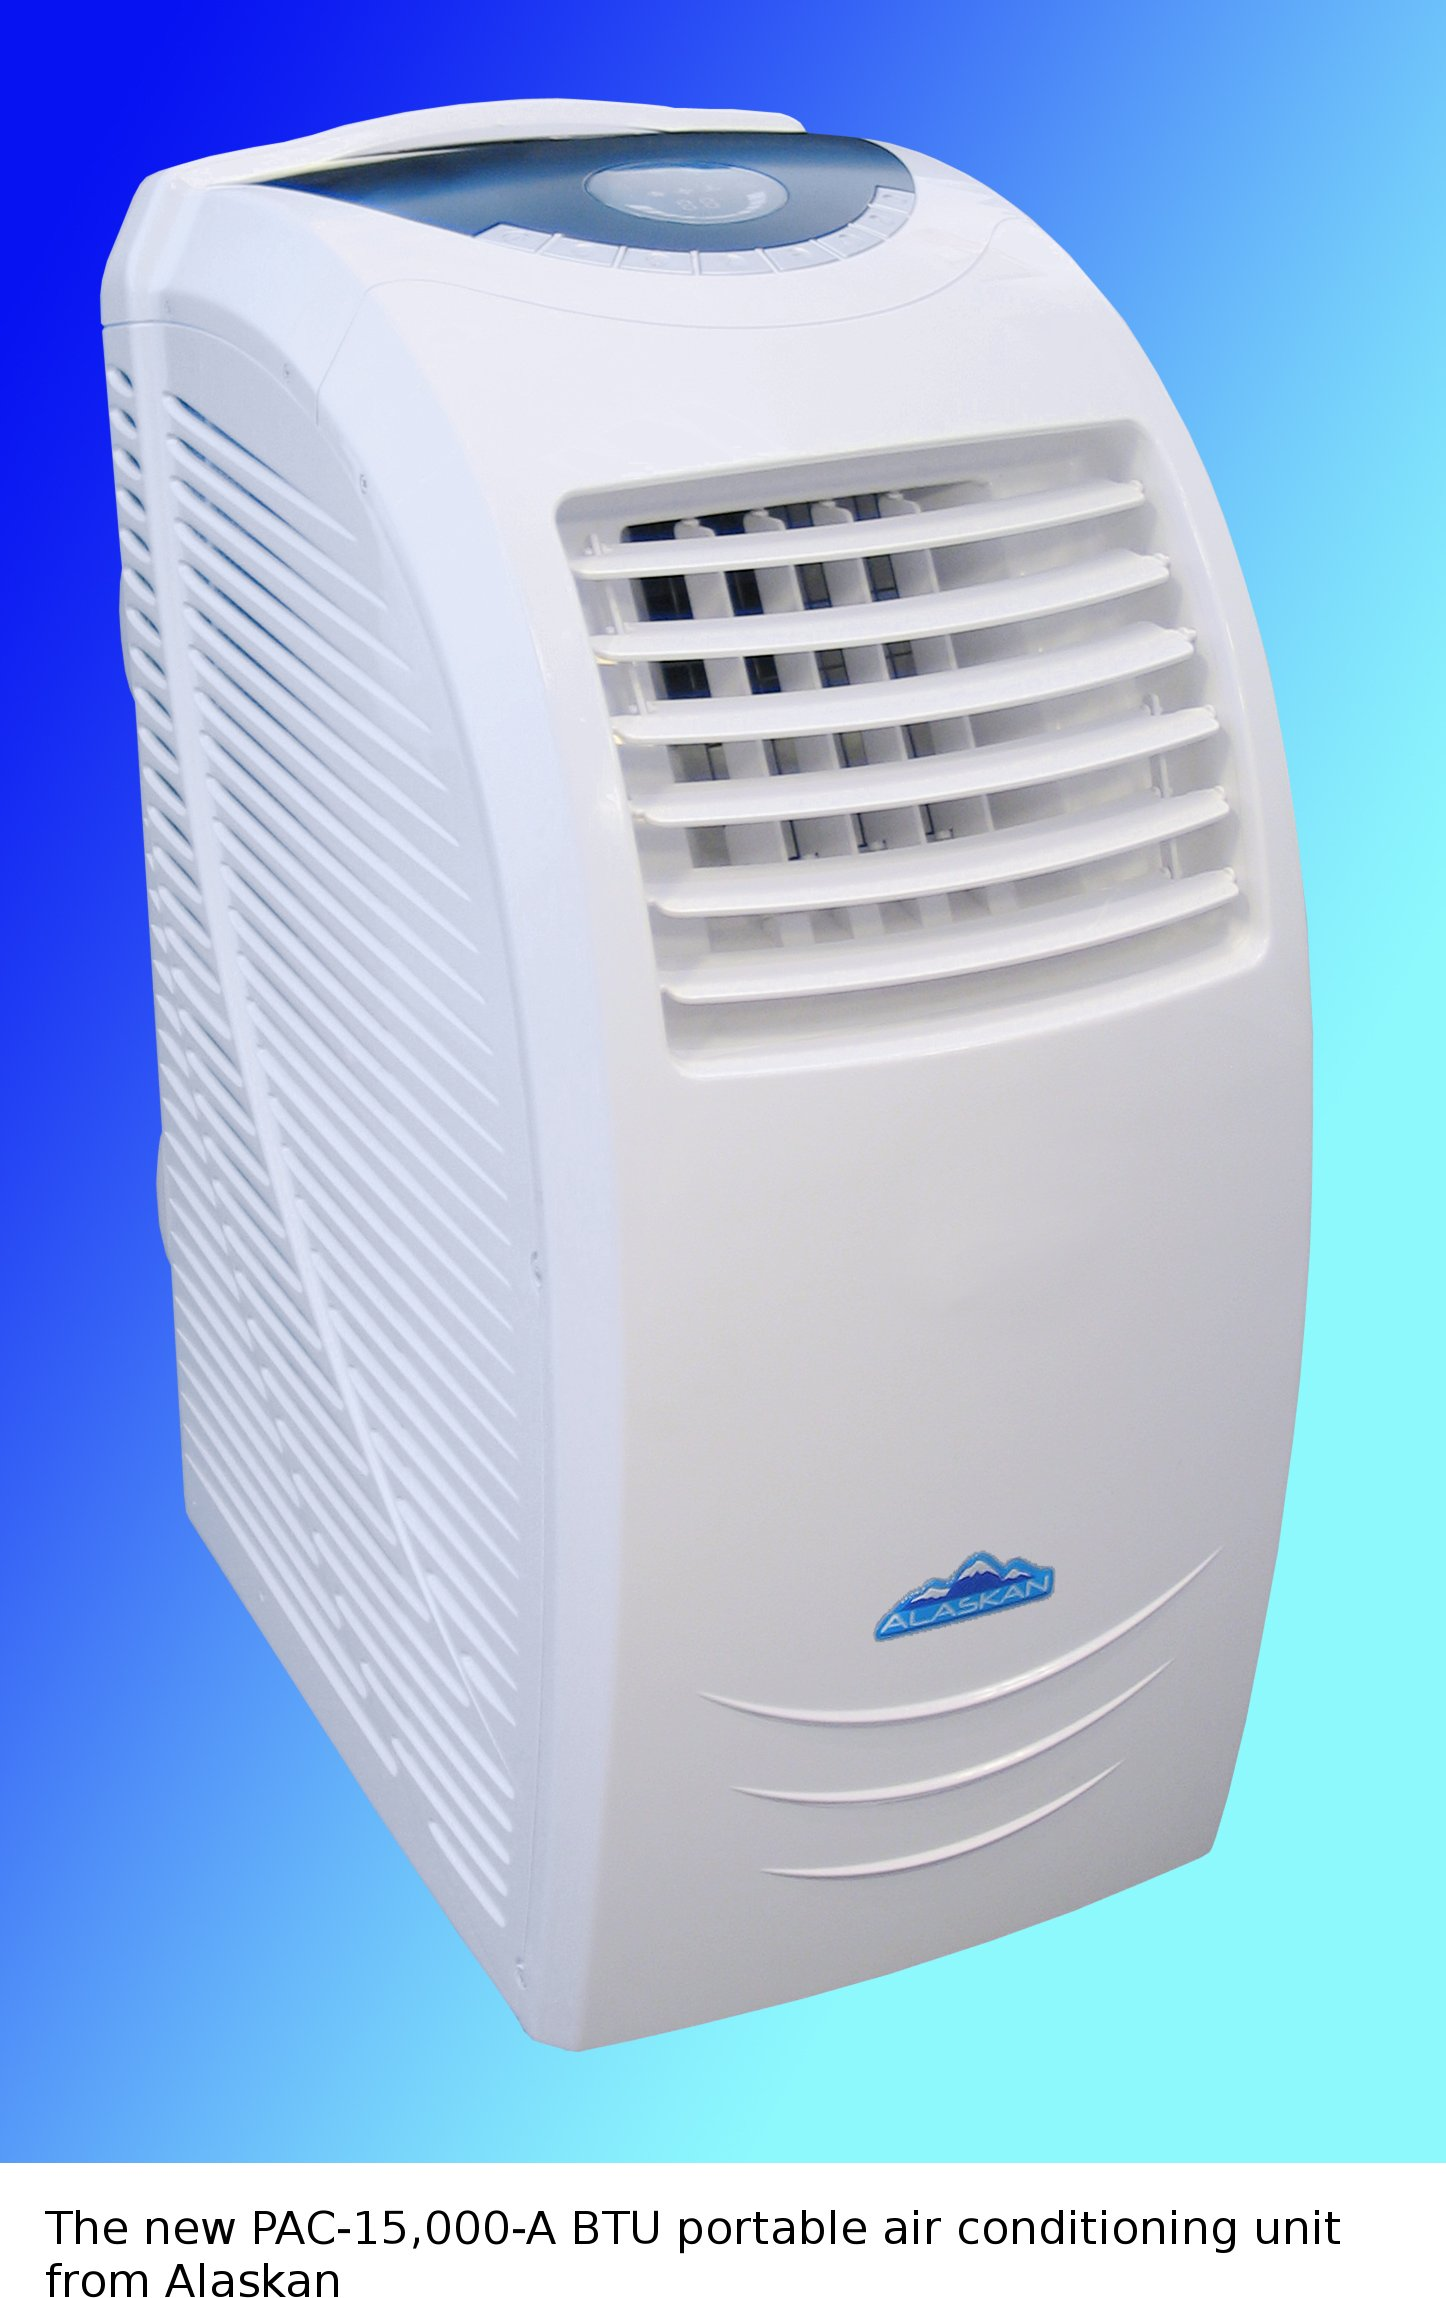 portable air conditioning units small portable air conditioning units uk. Black Bedroom Furniture Sets. Home Design Ideas